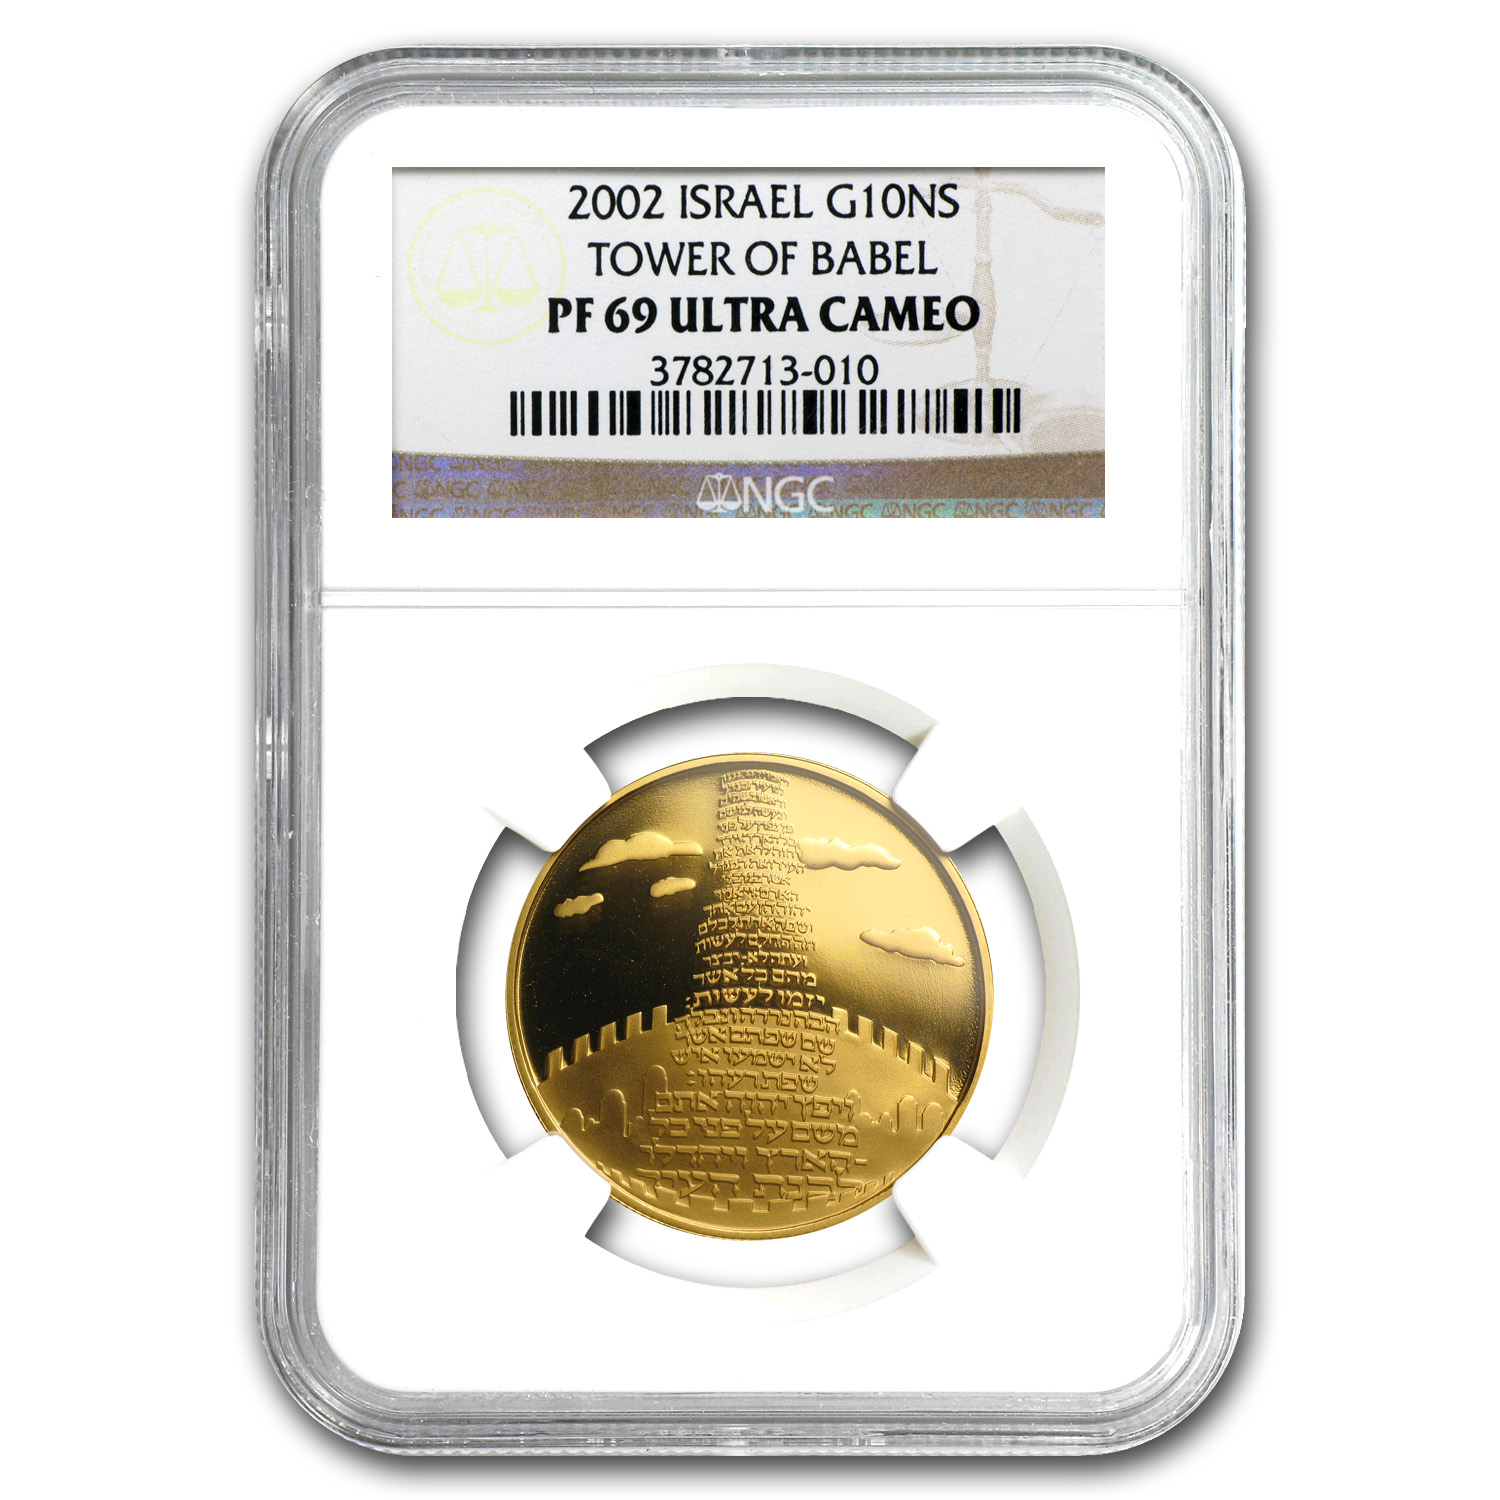 2002 Israel 1/2 oz Proof Gold Tower of Babel PF-69 NGC